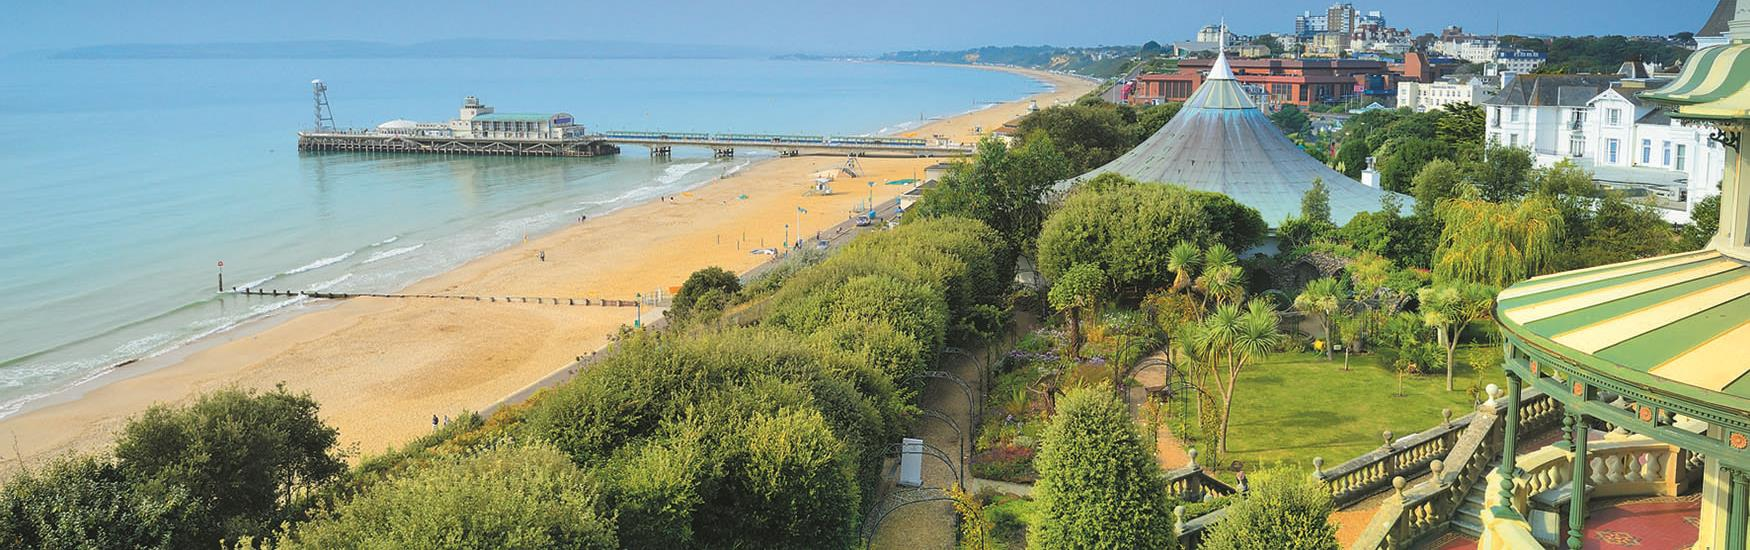 Bournemouth Pier from the Russell-Cotes garden in spring time